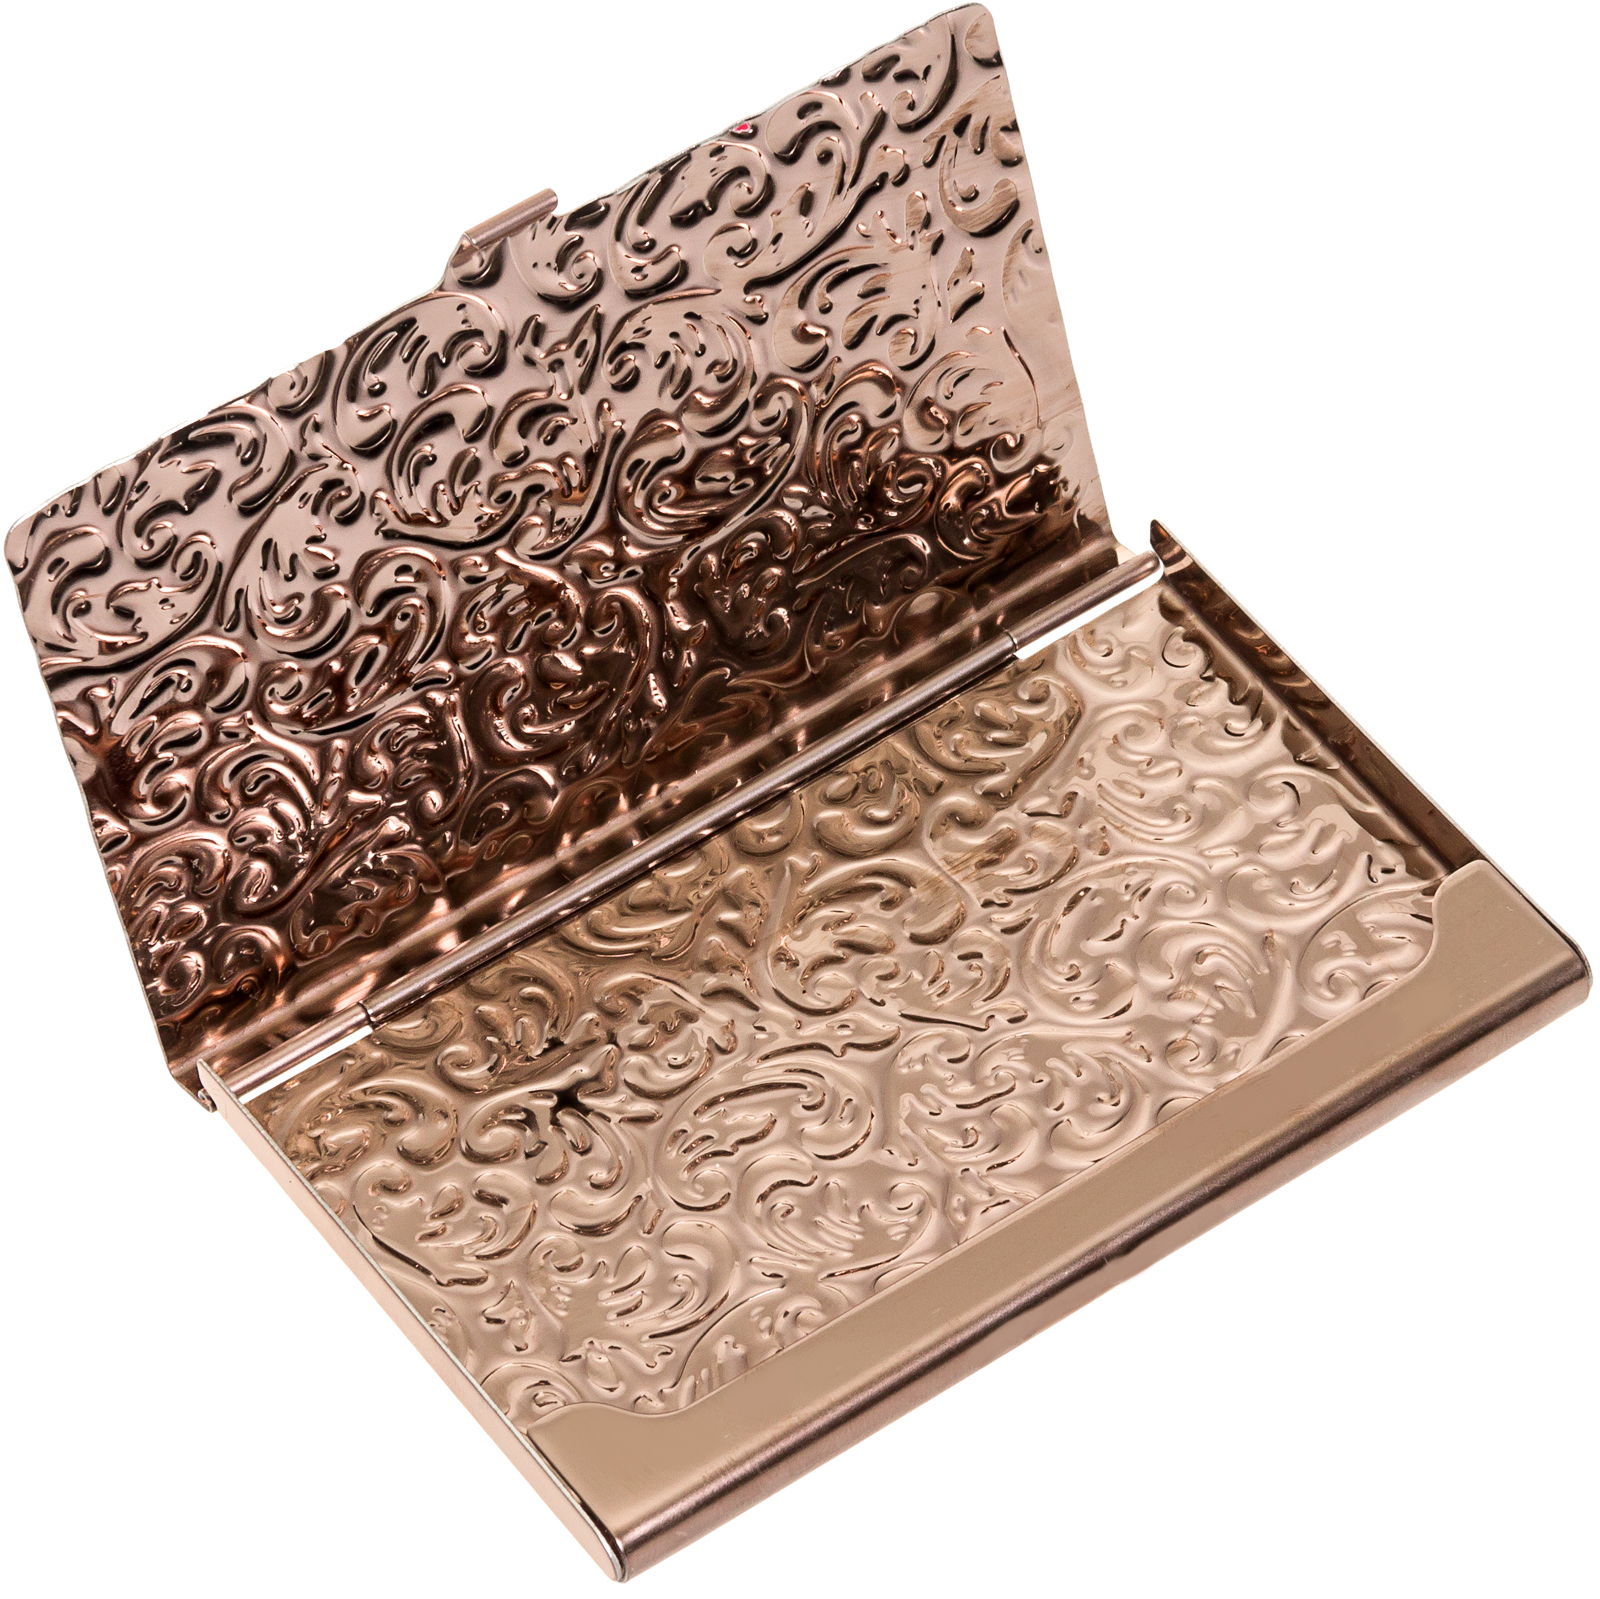 silverhooks new damask embossed metal business card holder id wallet walmartcom - Metal Business Card Case